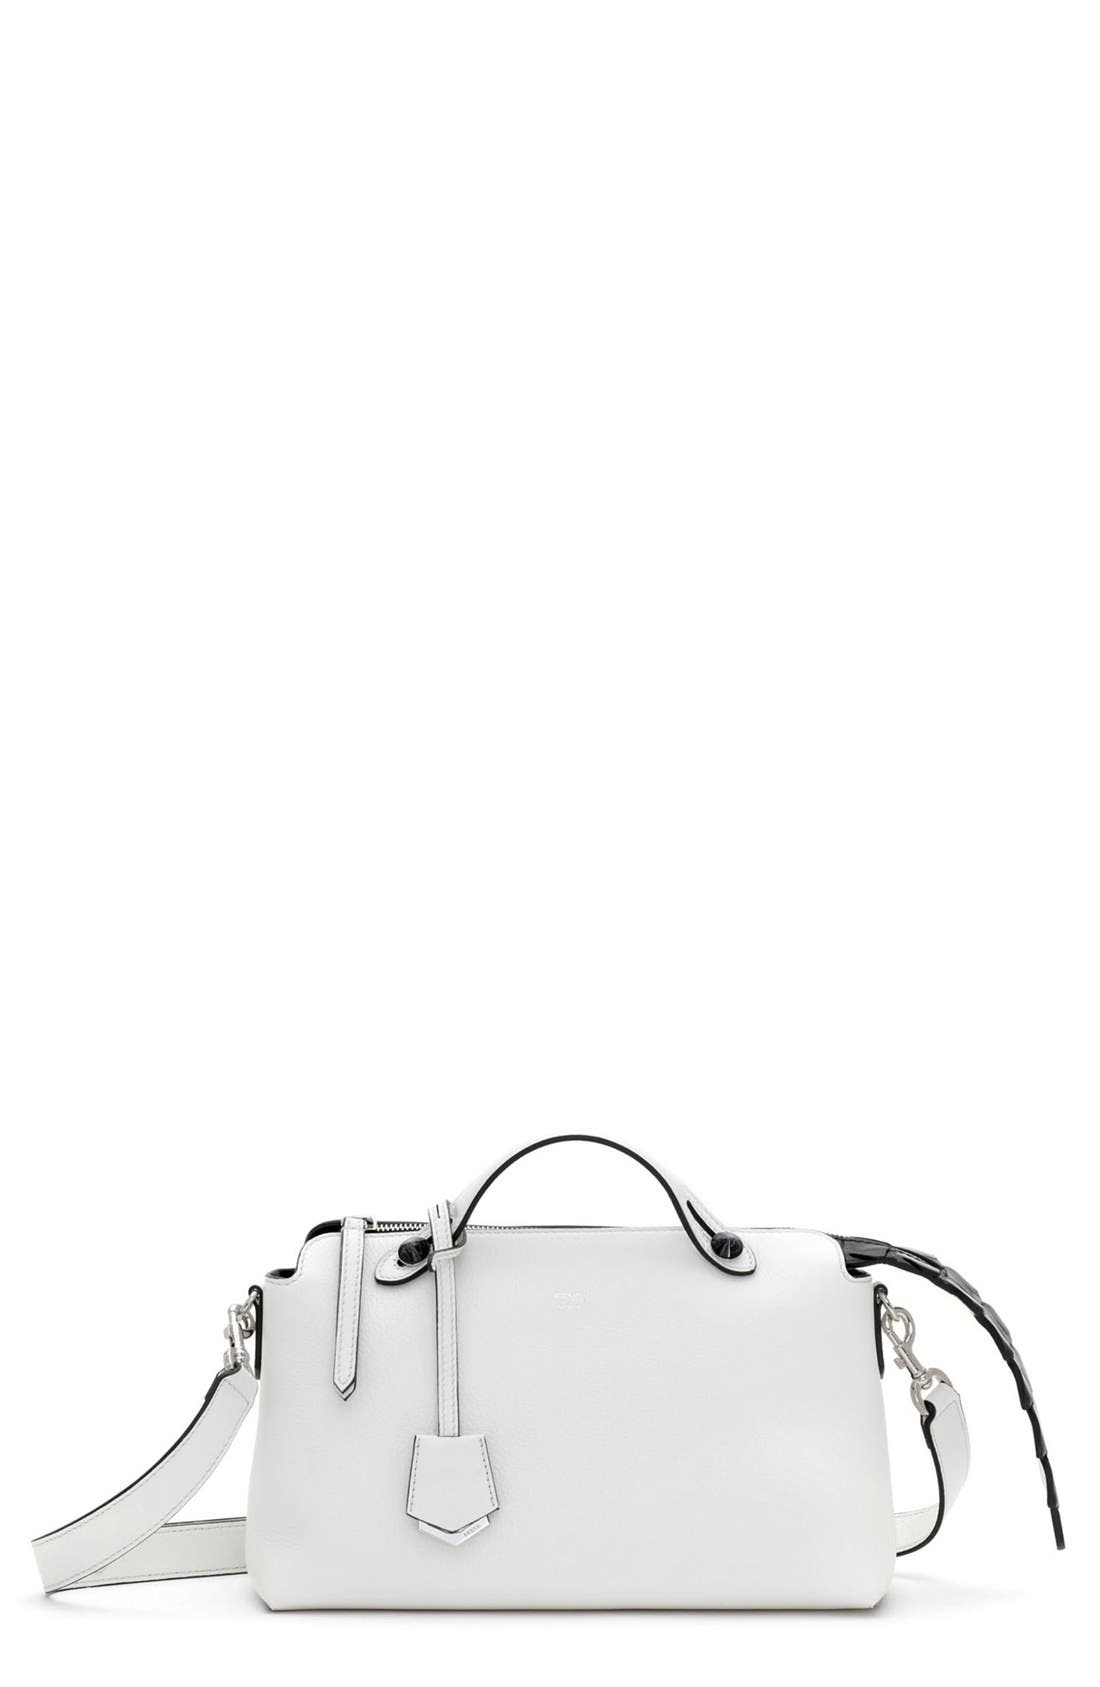 Alternate Image 1 Selected - Fendi 'Small By the Way - Croc-Tail' Convertible Leather Shoulder Bag